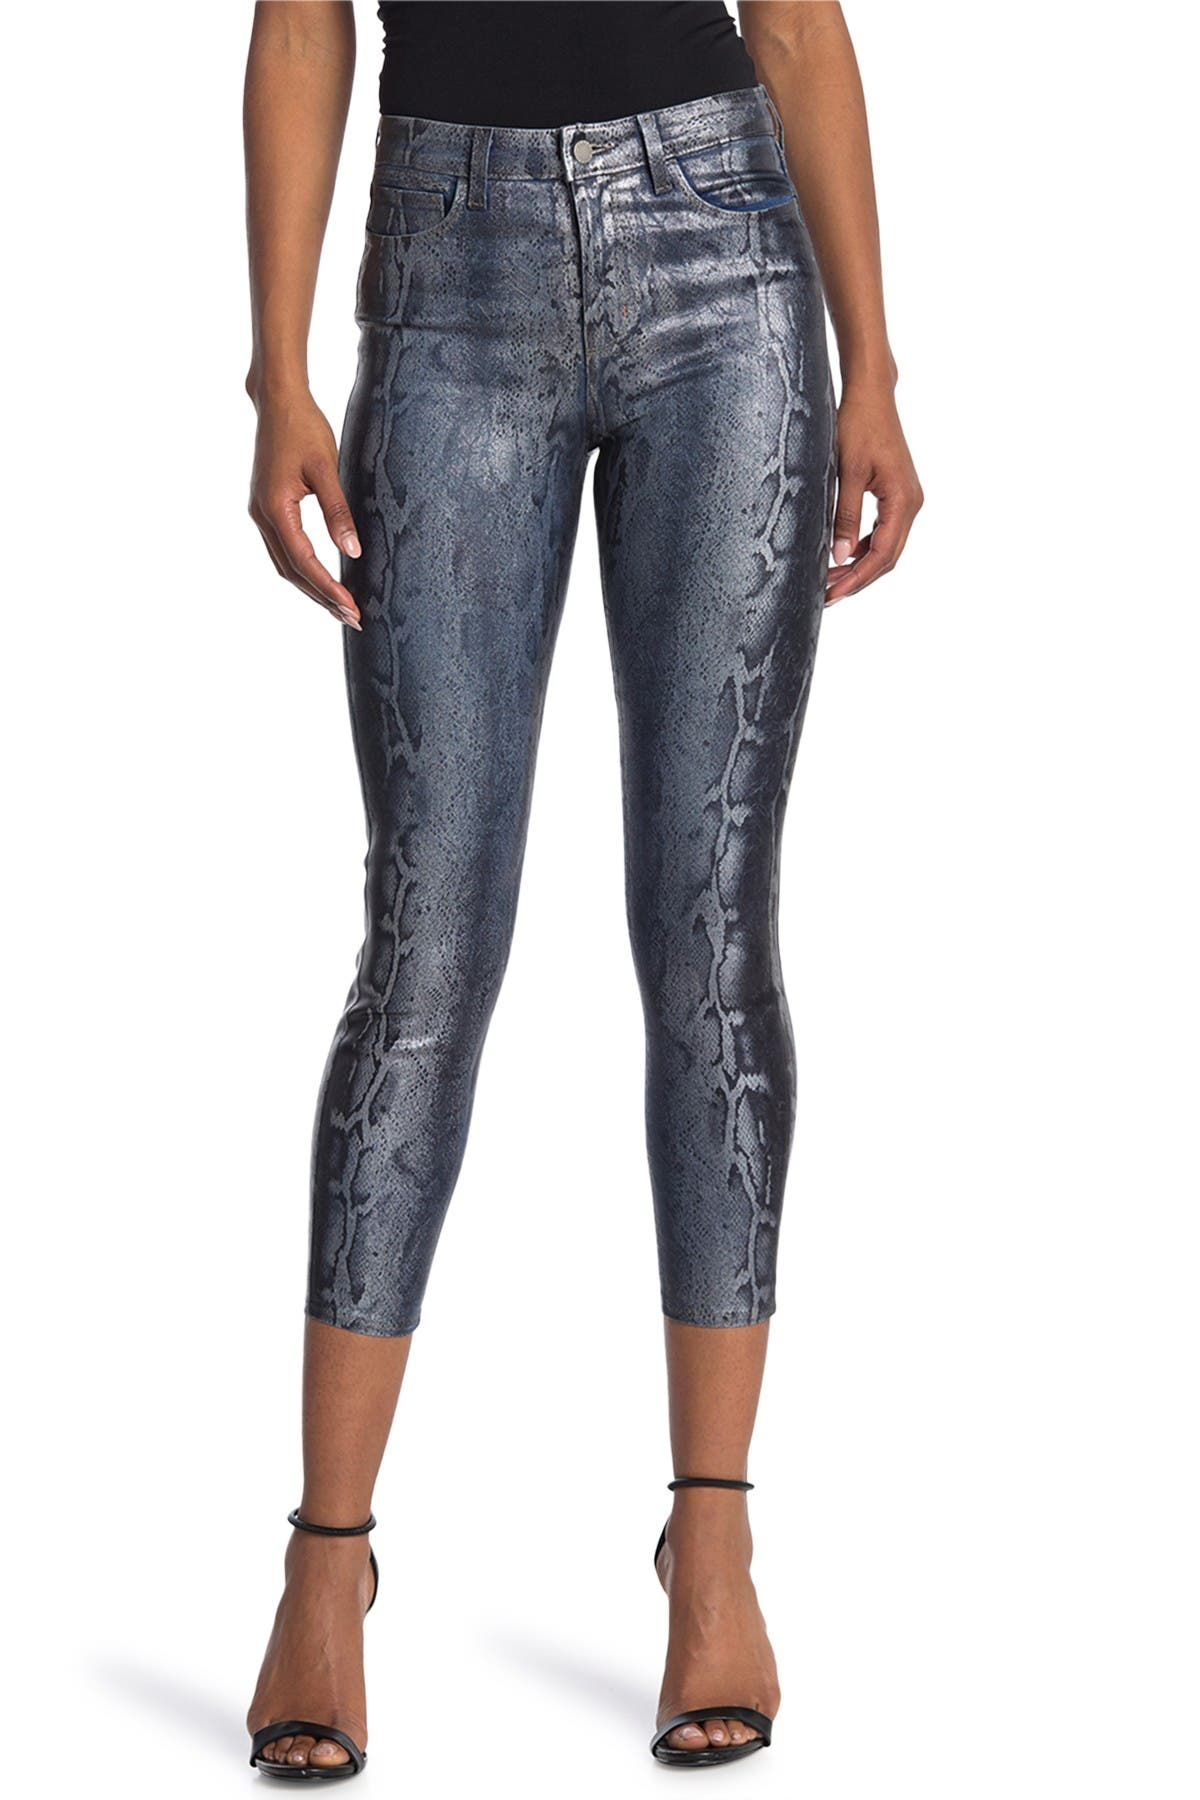 Image of L'AGENCE Margot Coated Snakeskin Print Skinny Jeans